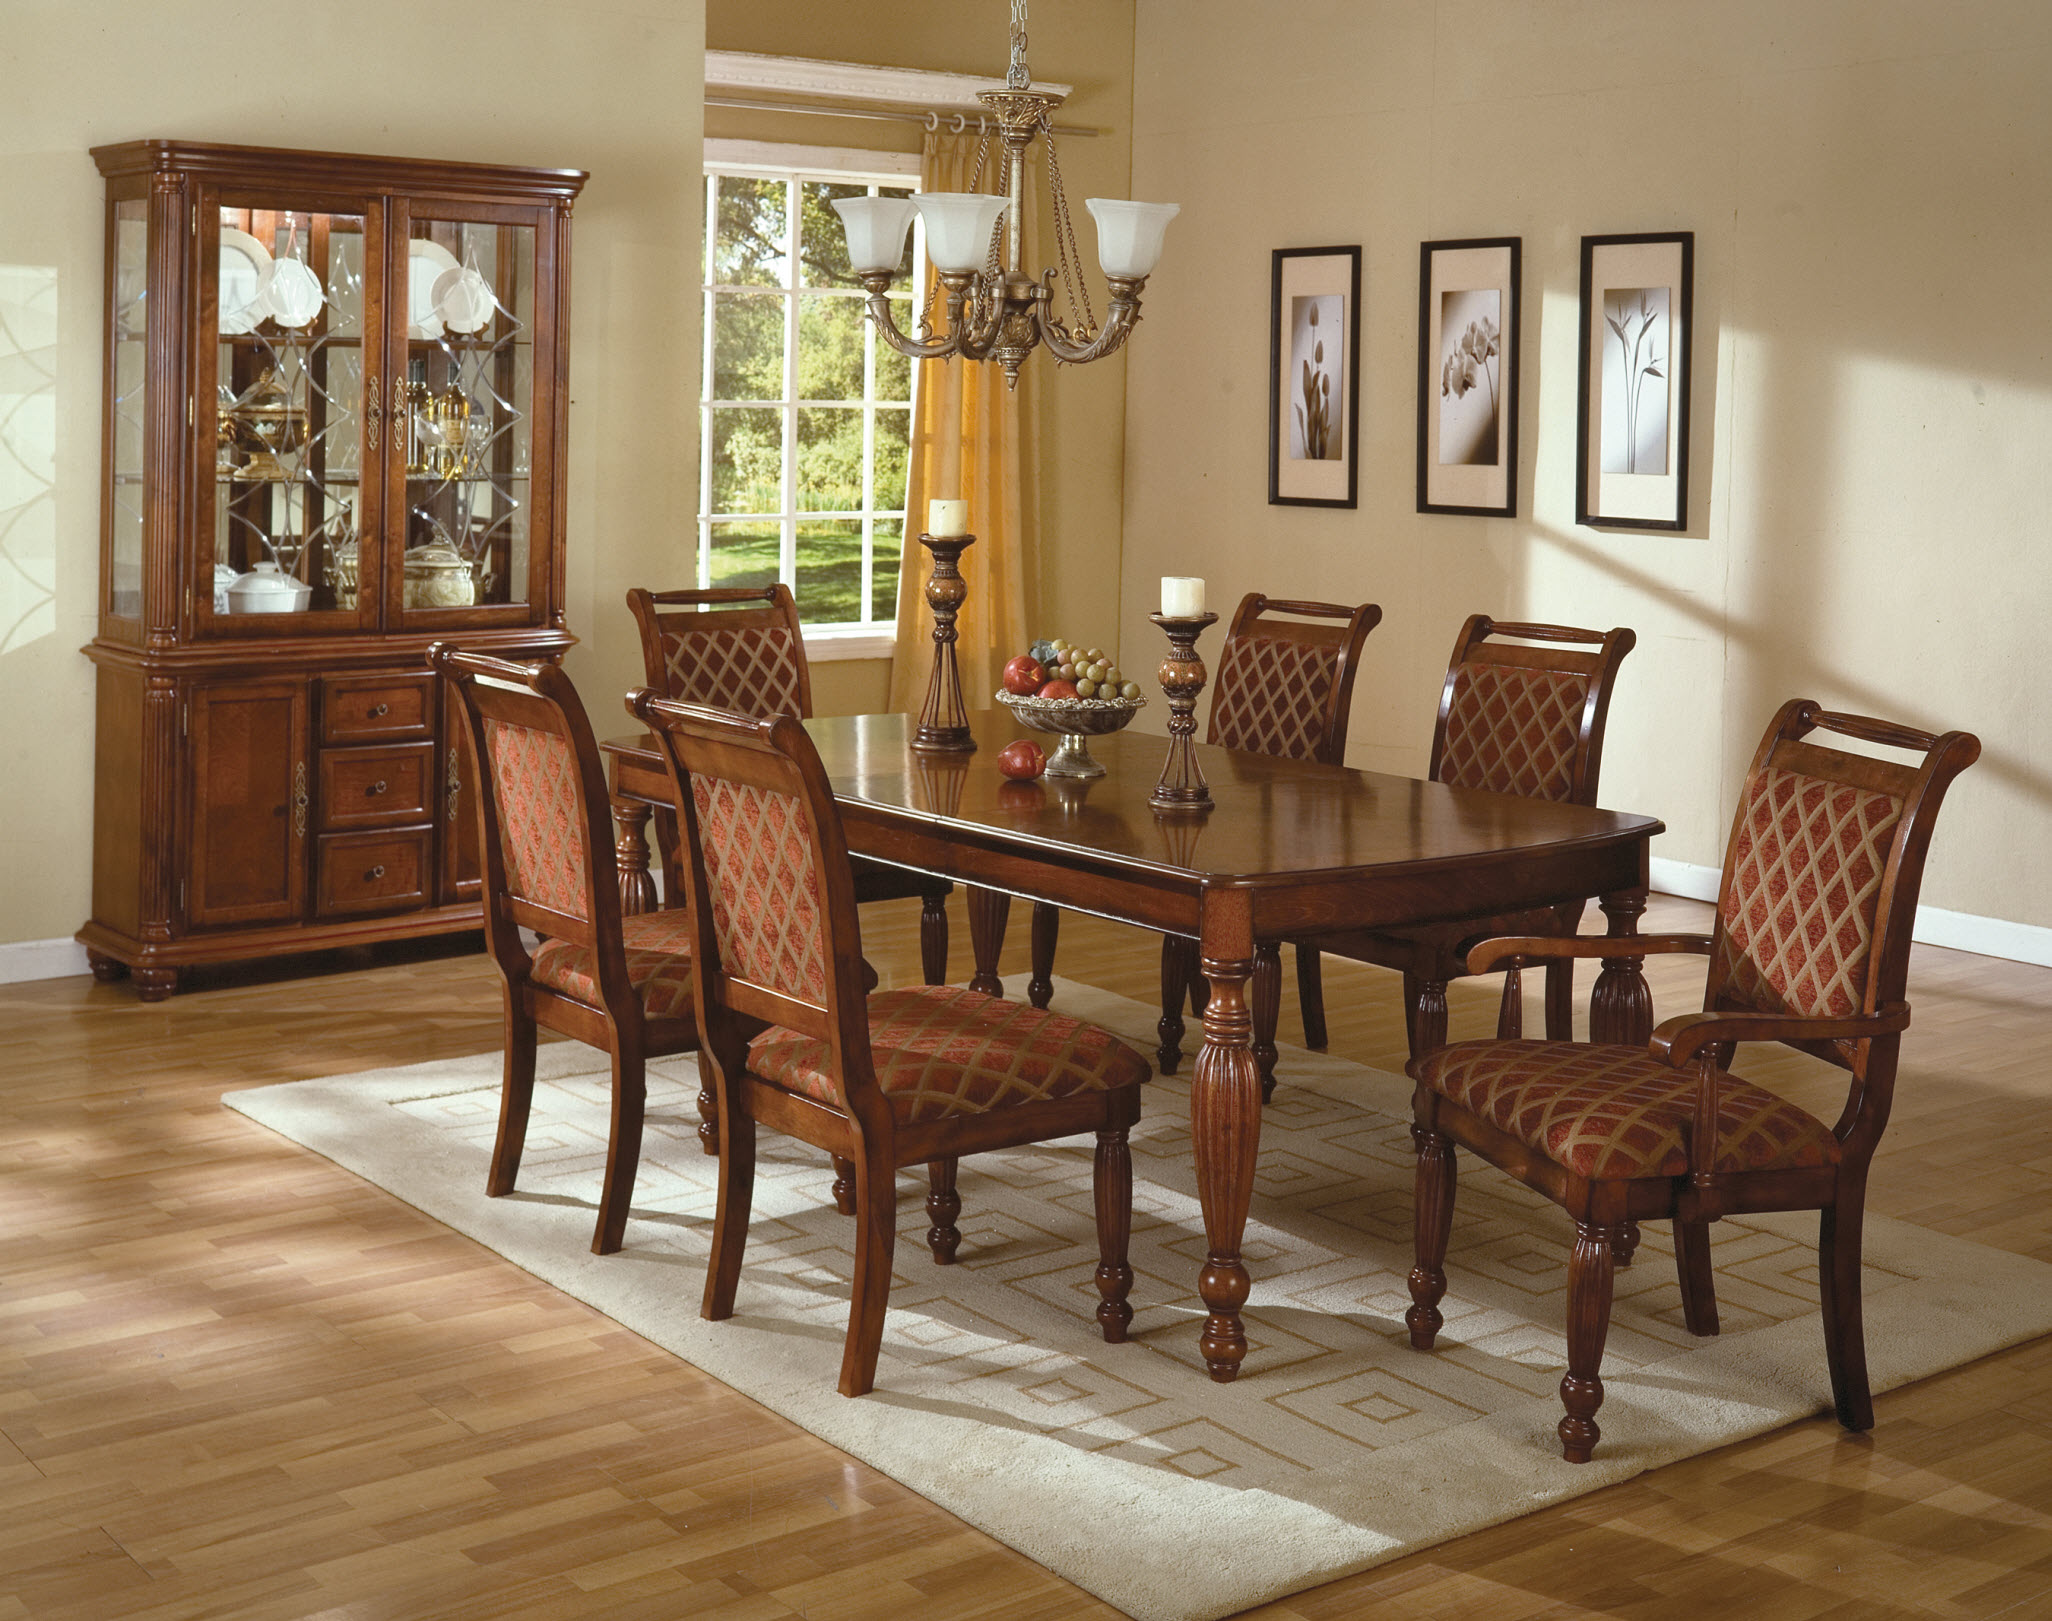 Dining Room Chairs To plete Your Dining Table